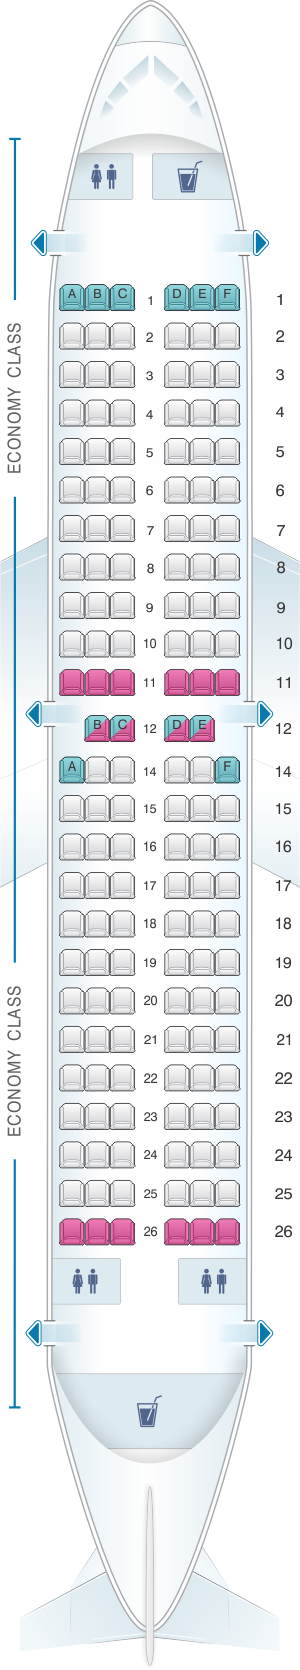 Seat map for Jet2 Boeing B737-300